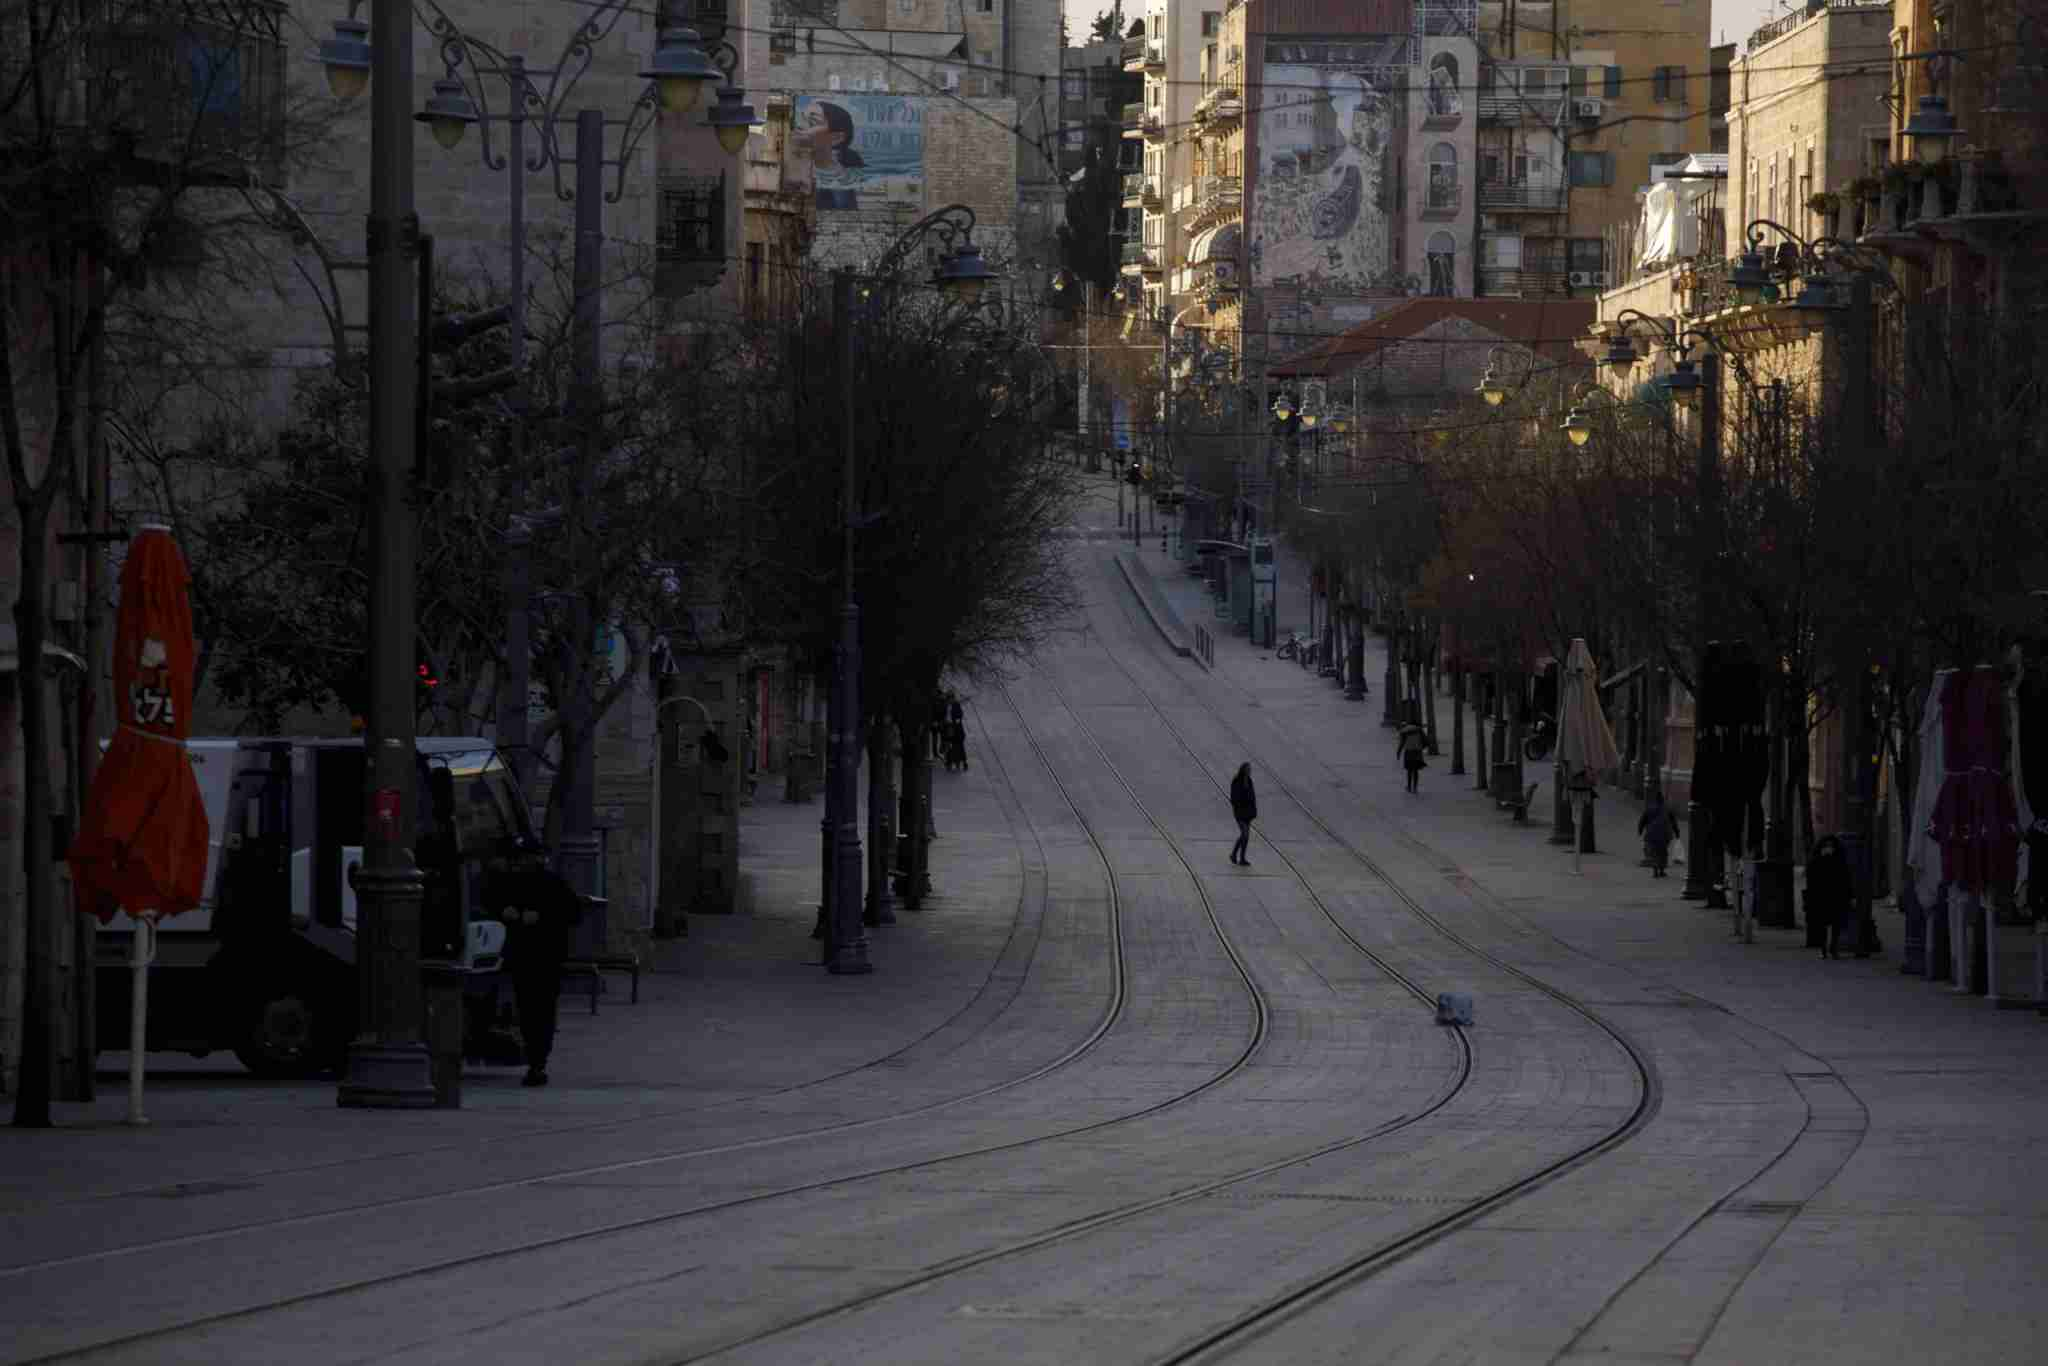 Pedestrians walk along a deserted street during lockdown in Jerusalem, Israel, on Sunday, March 29, 2020. The central bank said Sunday that both moves by its banking supervision department are aimed at boosting lenders ability to provide credit as the coronavirus outbreak hammers the local economy and markets. Photographer: Kobi Wolf/Bloomberg via Getty Images